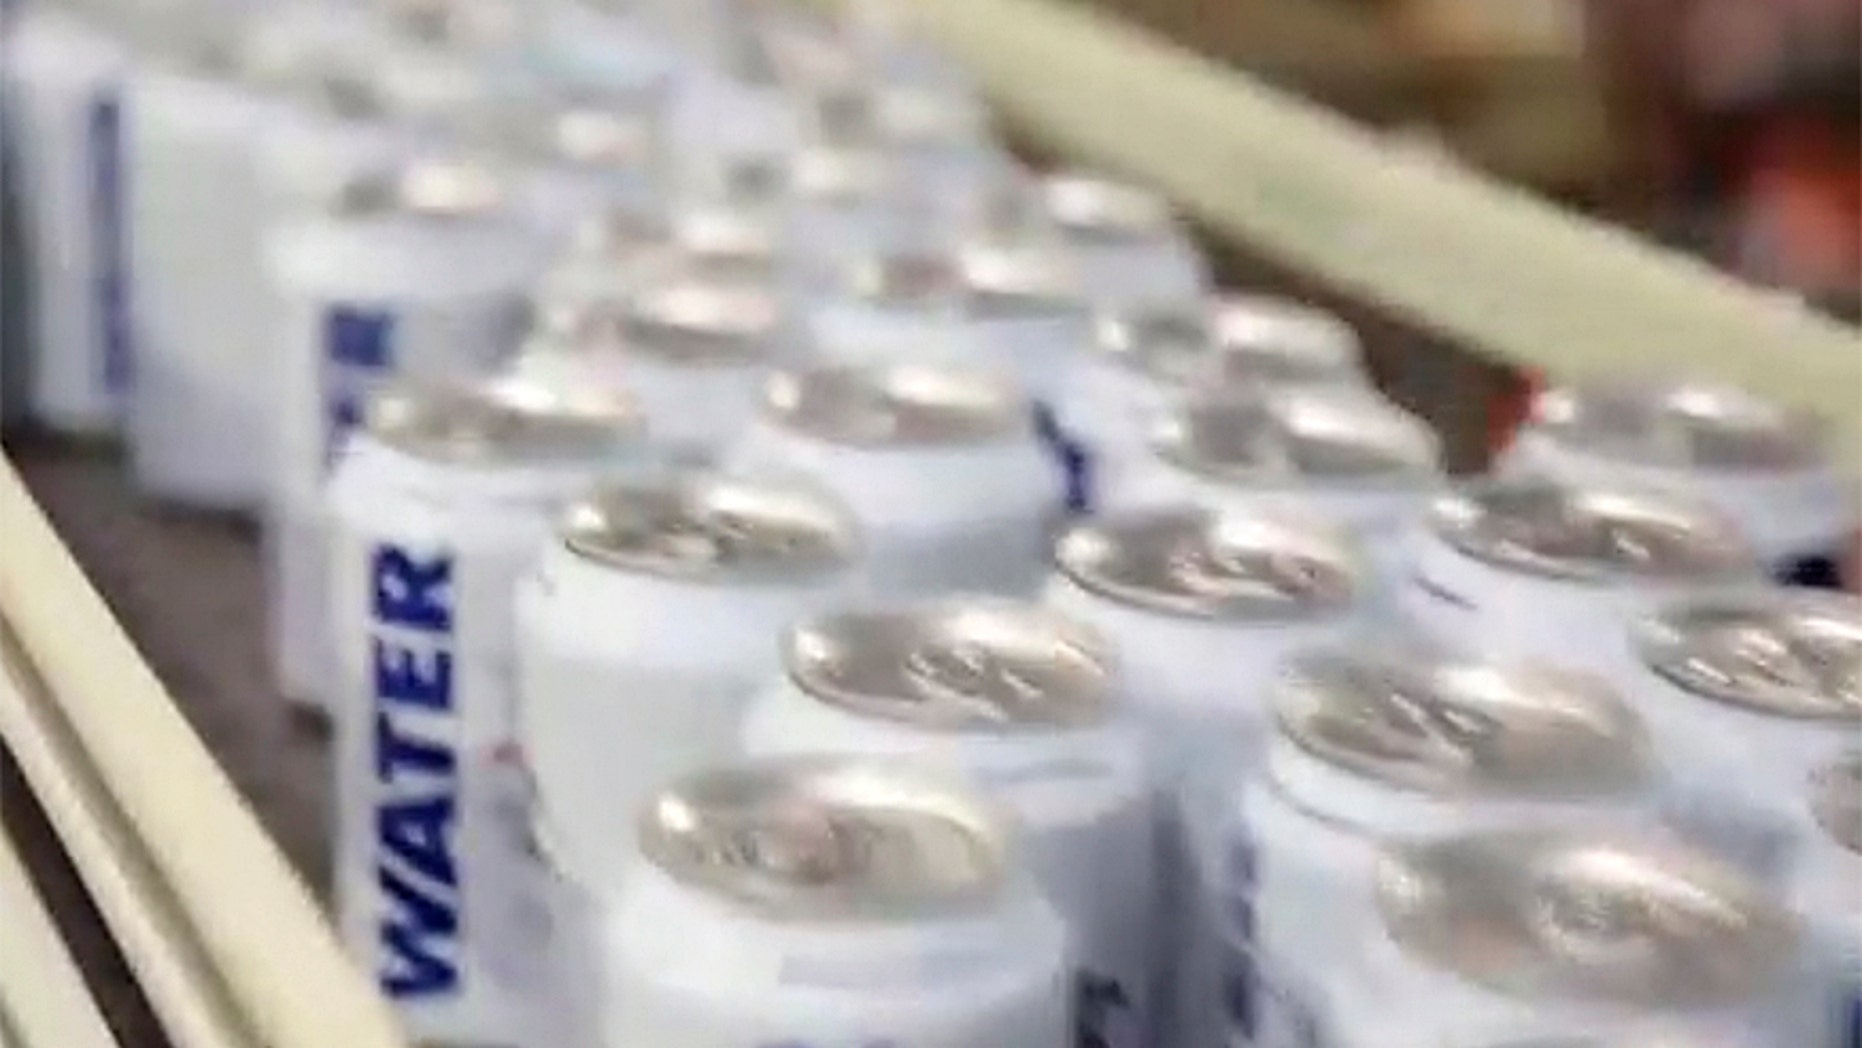 More than 50,000 cans of Anheuser-Busch emergency drinking water will be shipped to flooding victims in Baton Rouge, LA.